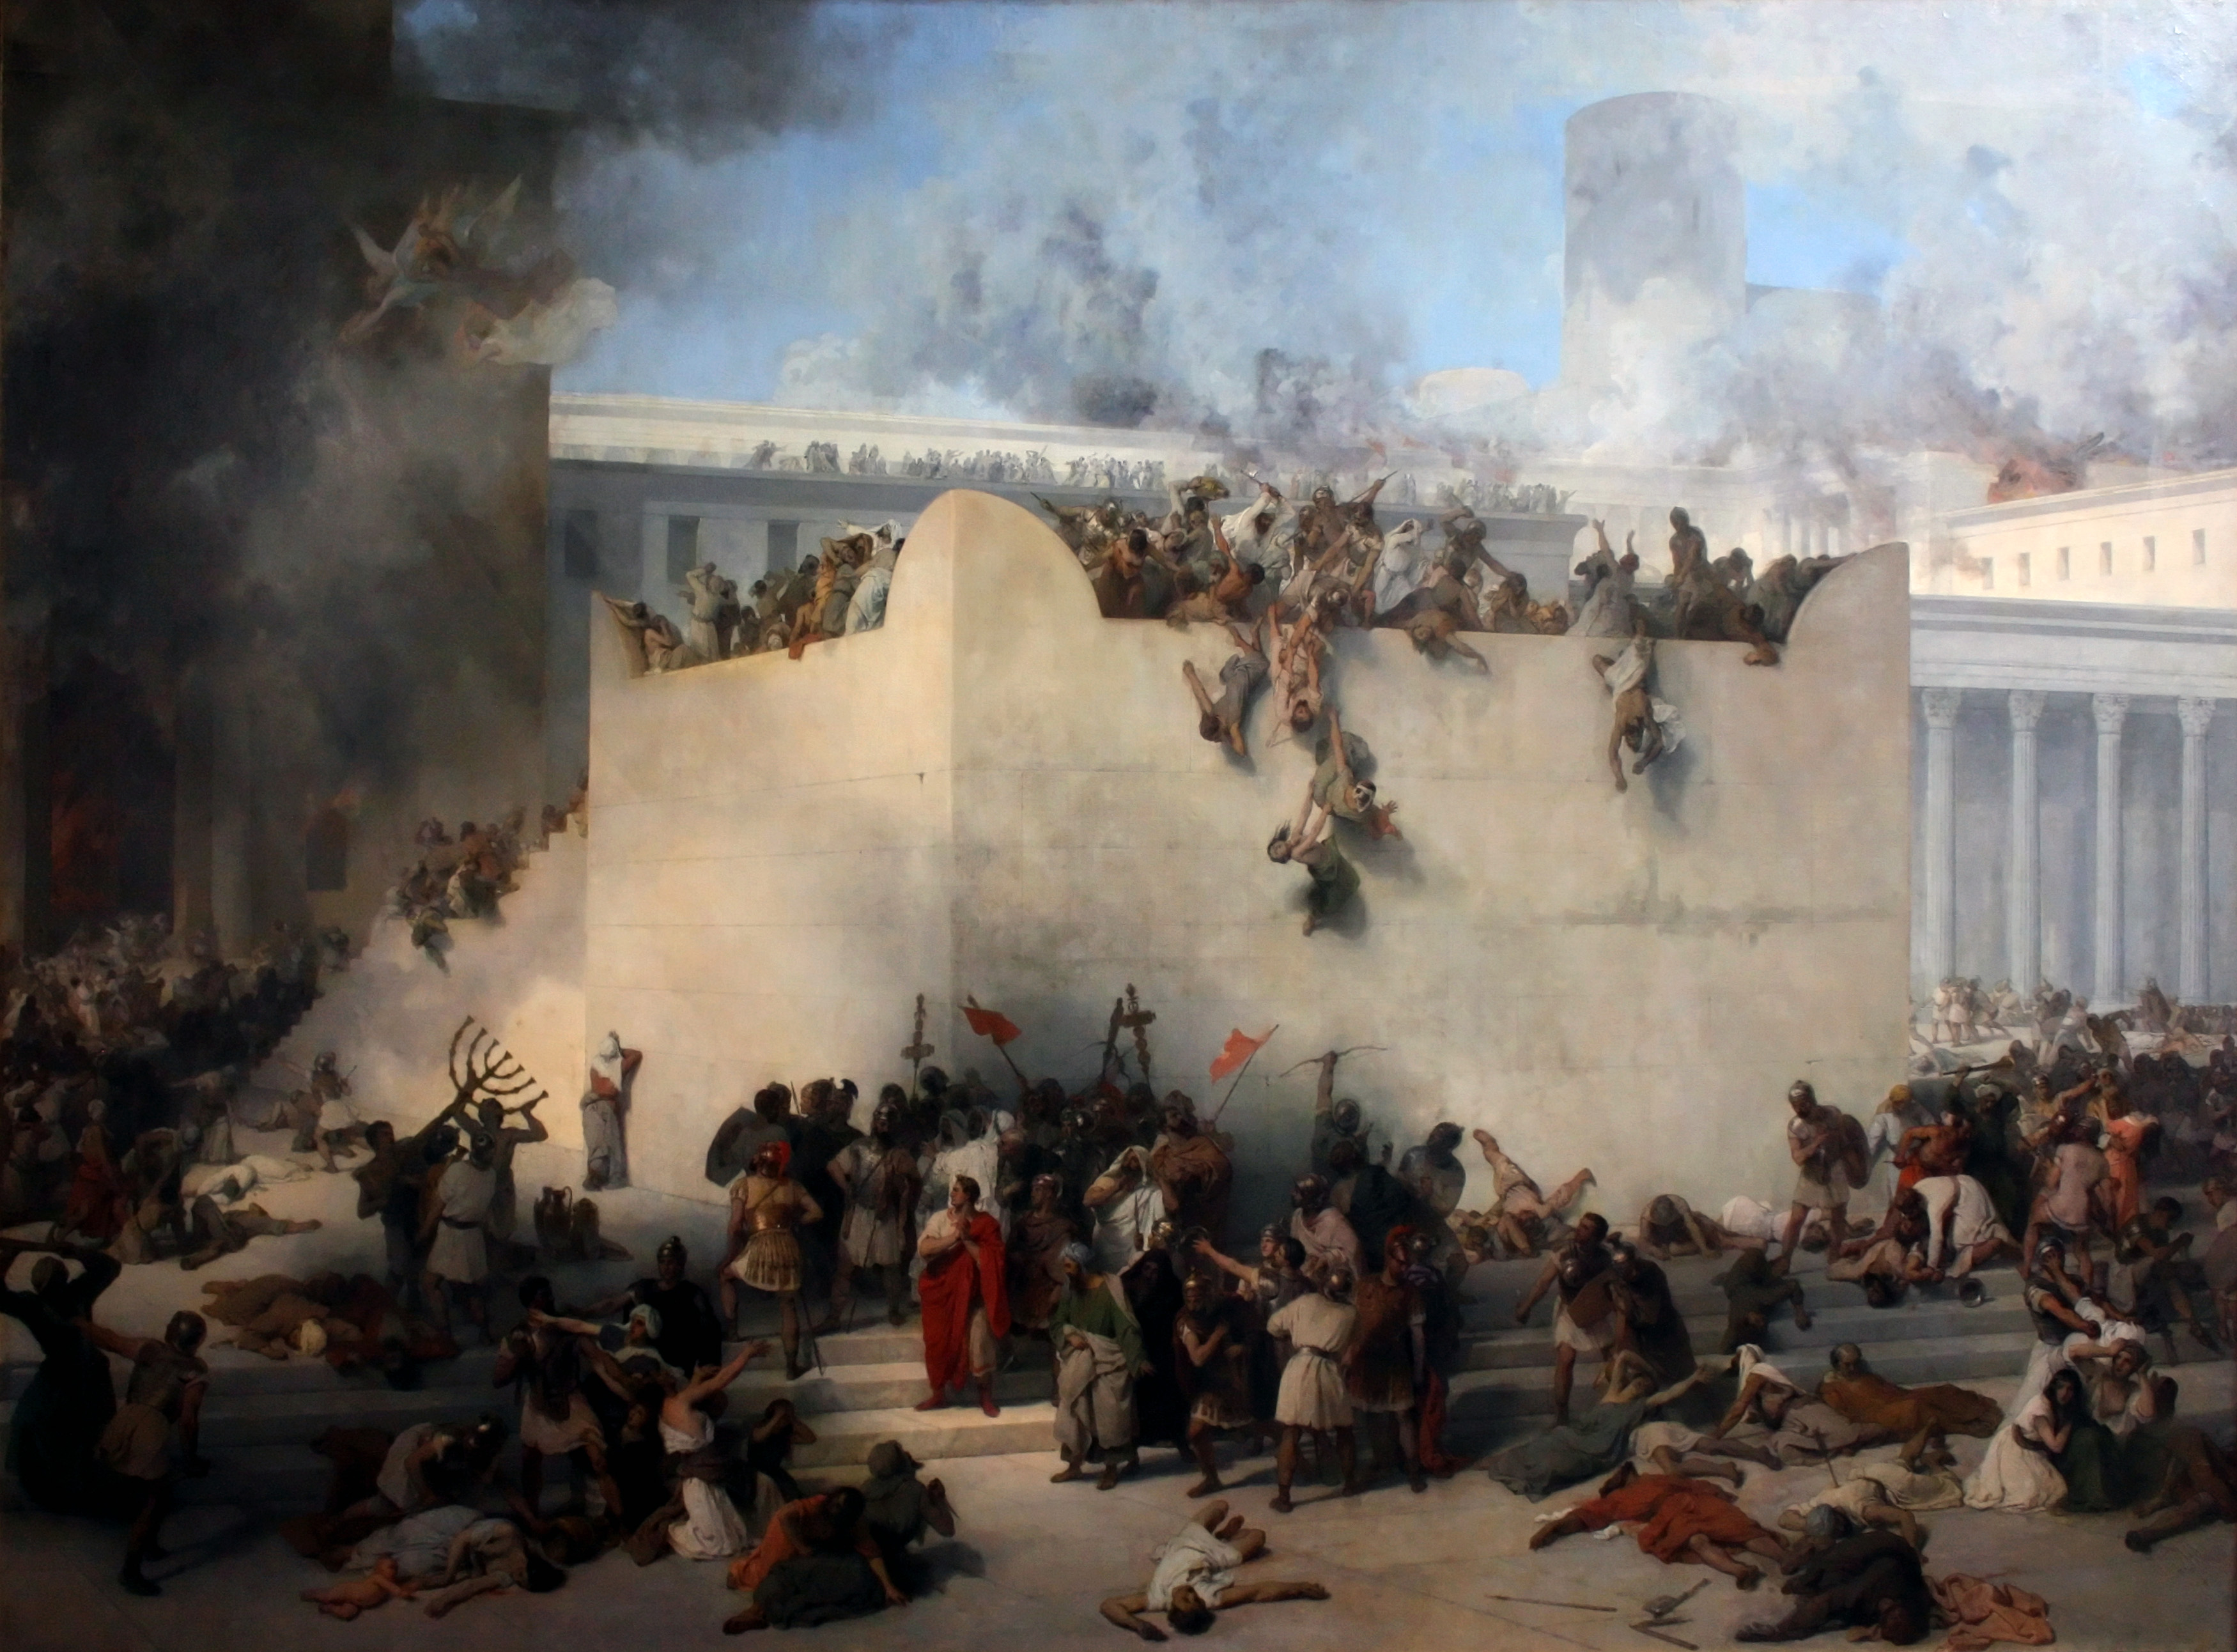 The Romans begin to loot and burn the Temple.